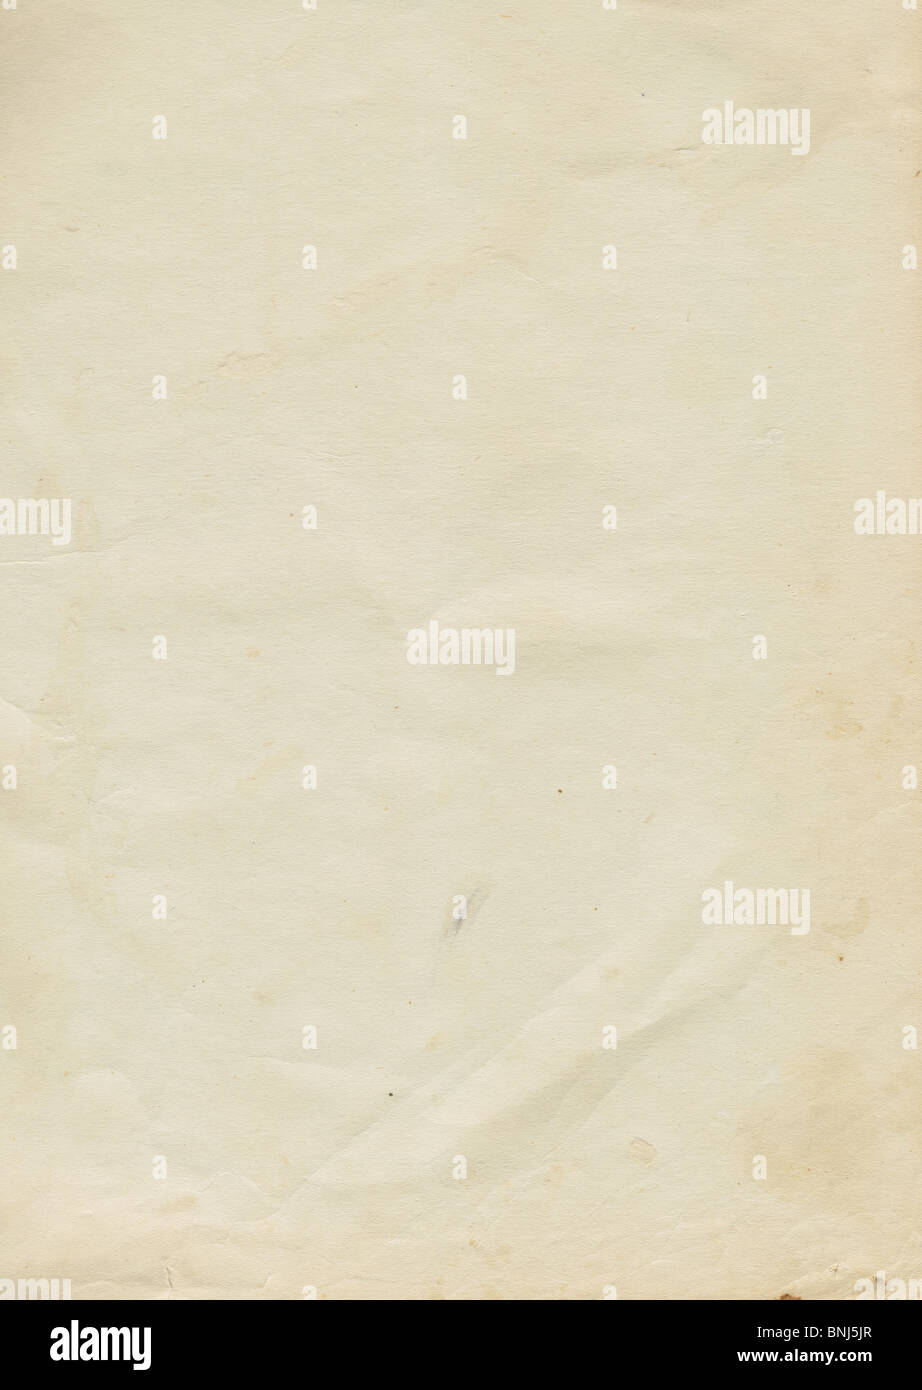 Old paper background texture. - Stock Image